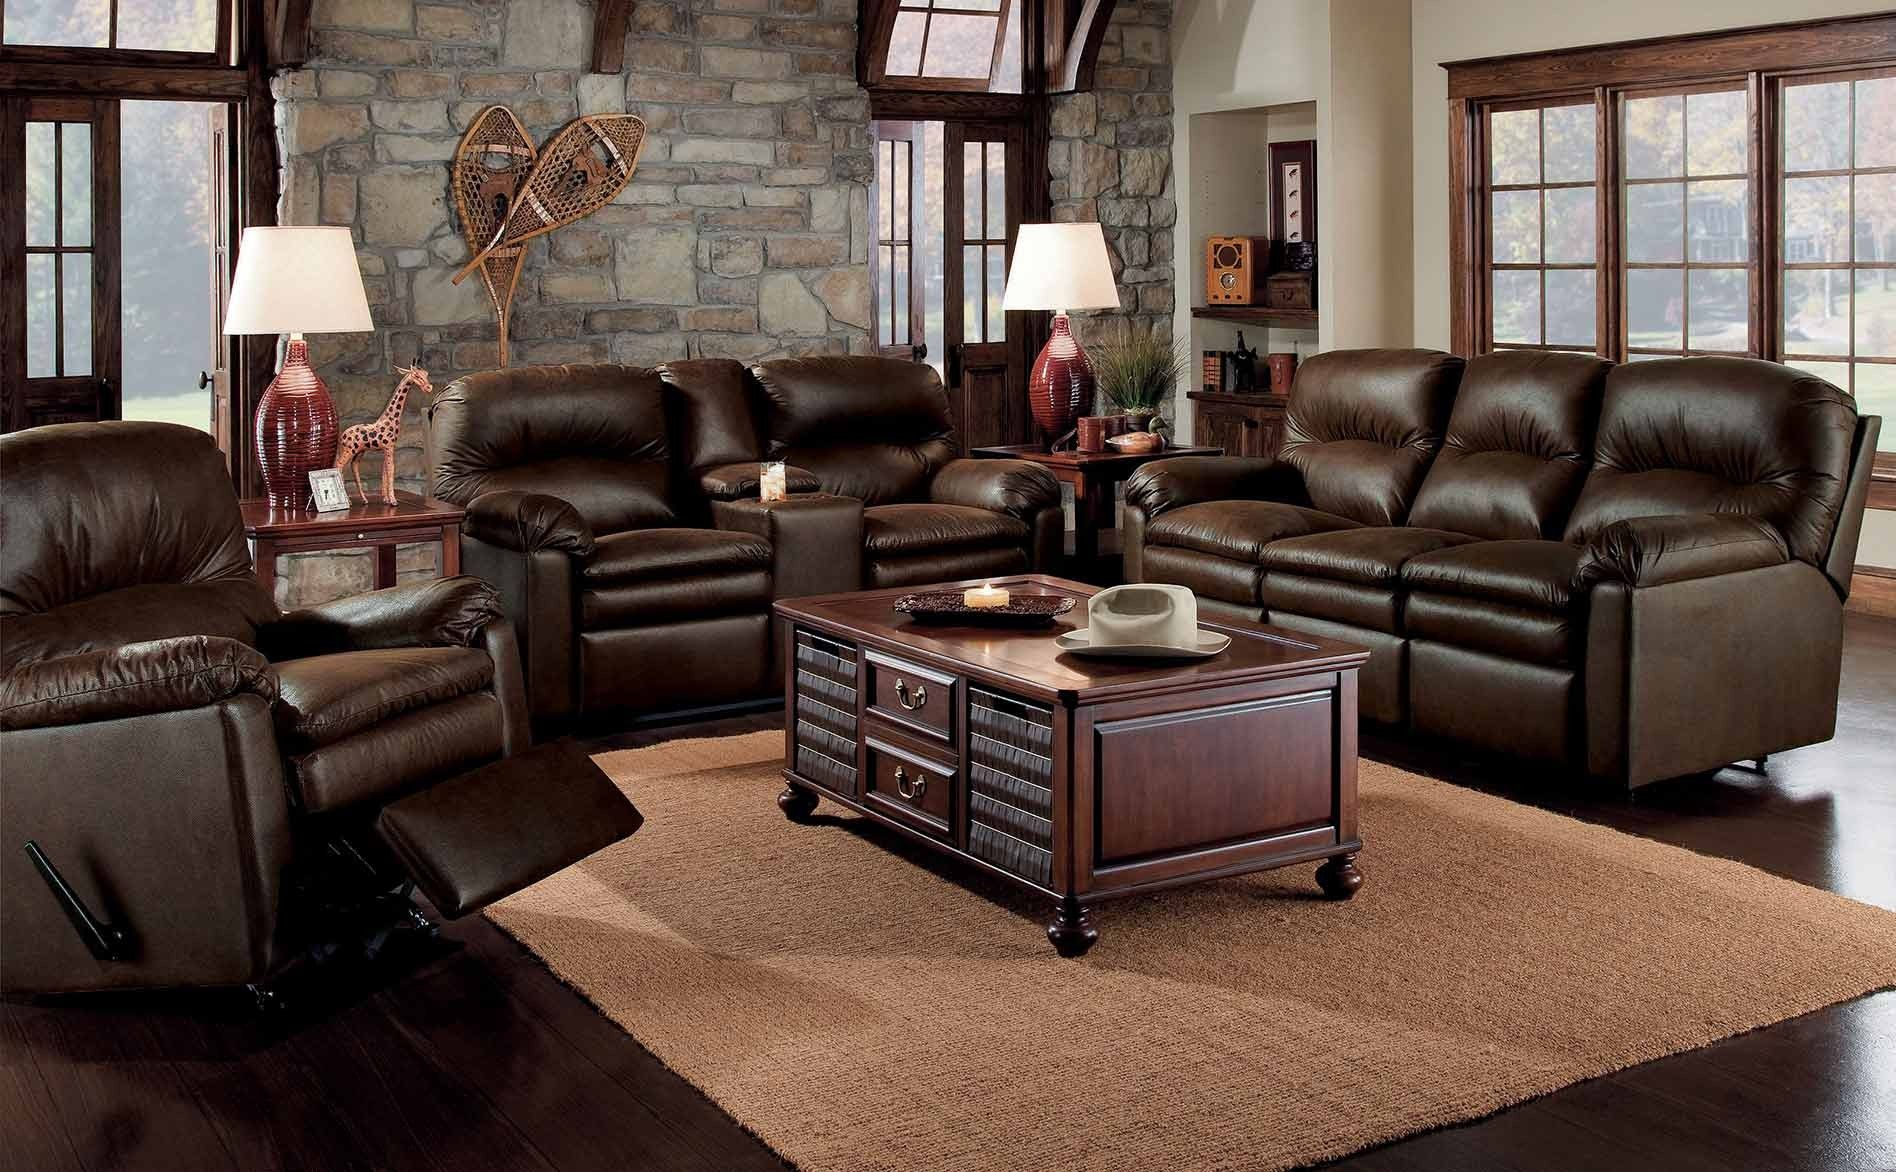 lane leather recliner sofa living room overstuffed couches couch loveseat sofa and thesofa. Black Bedroom Furniture Sets. Home Design Ideas